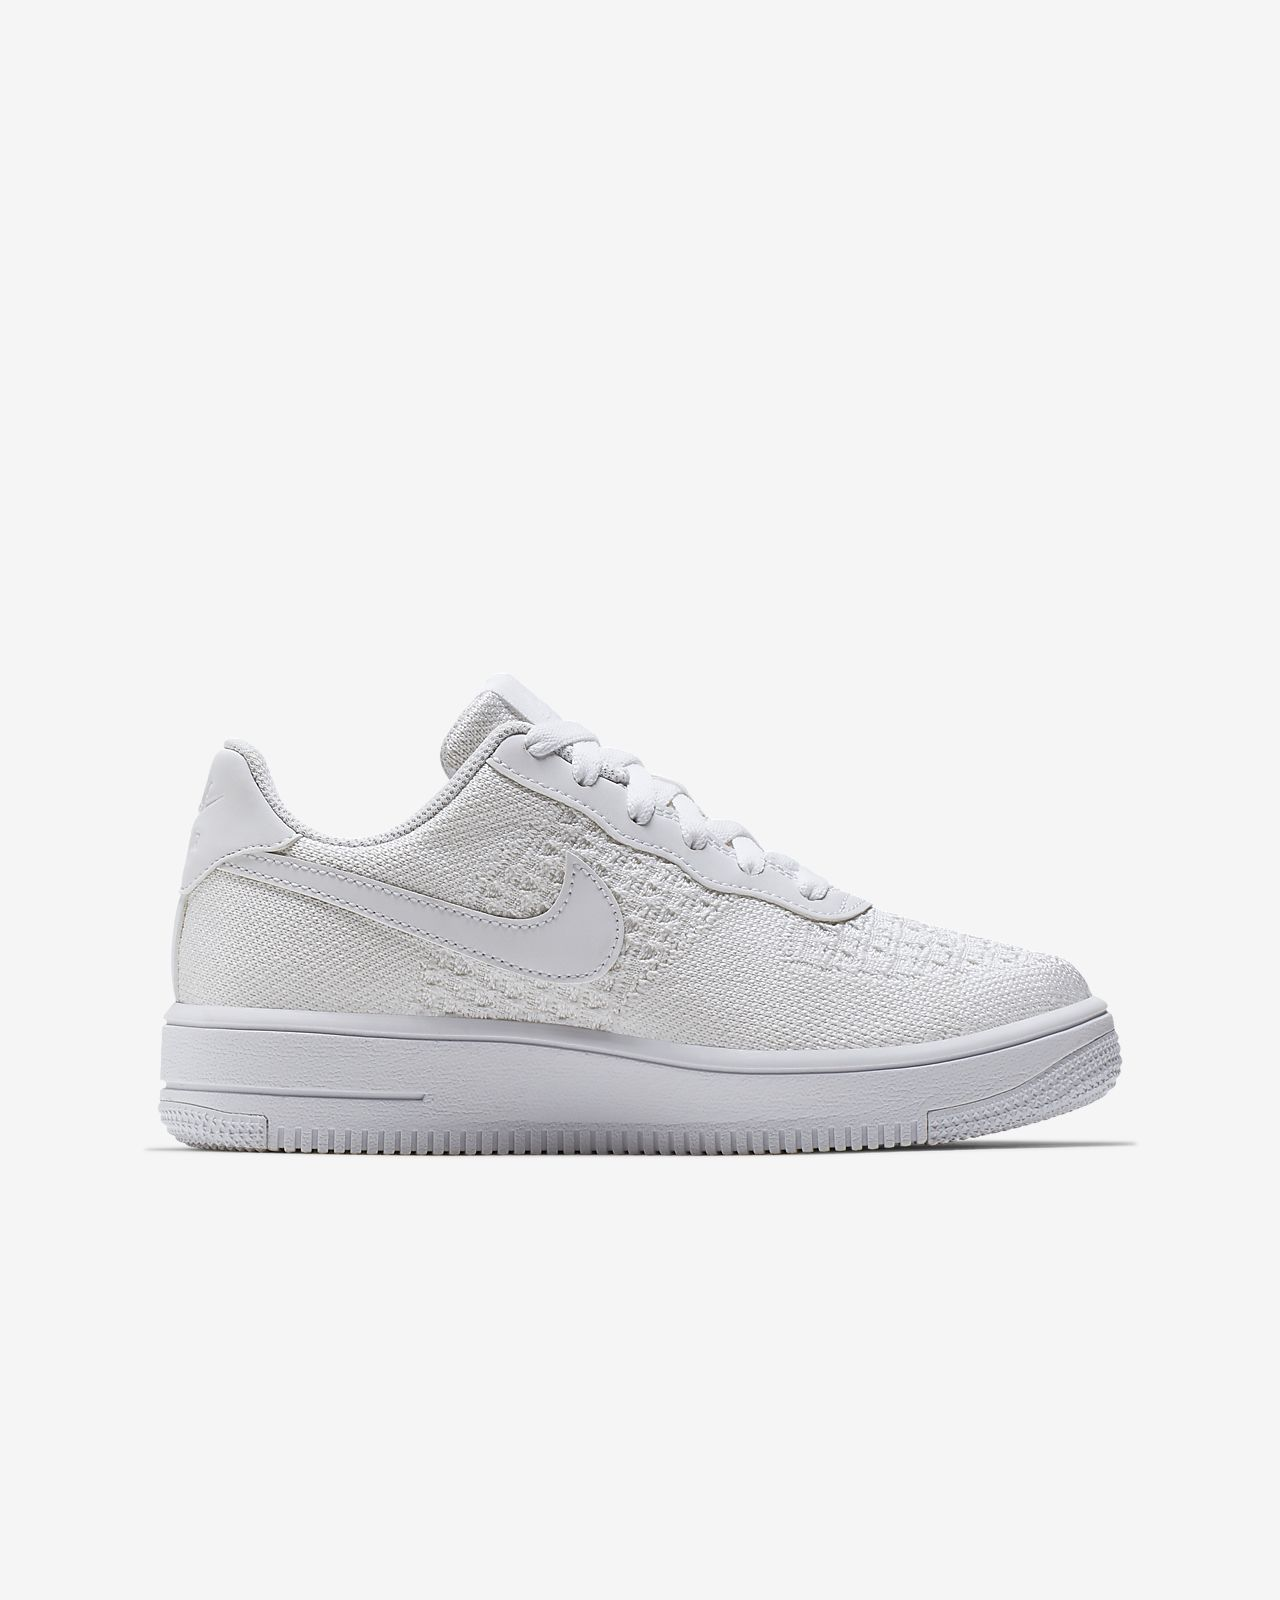 Chaussures nike air force 1 flight